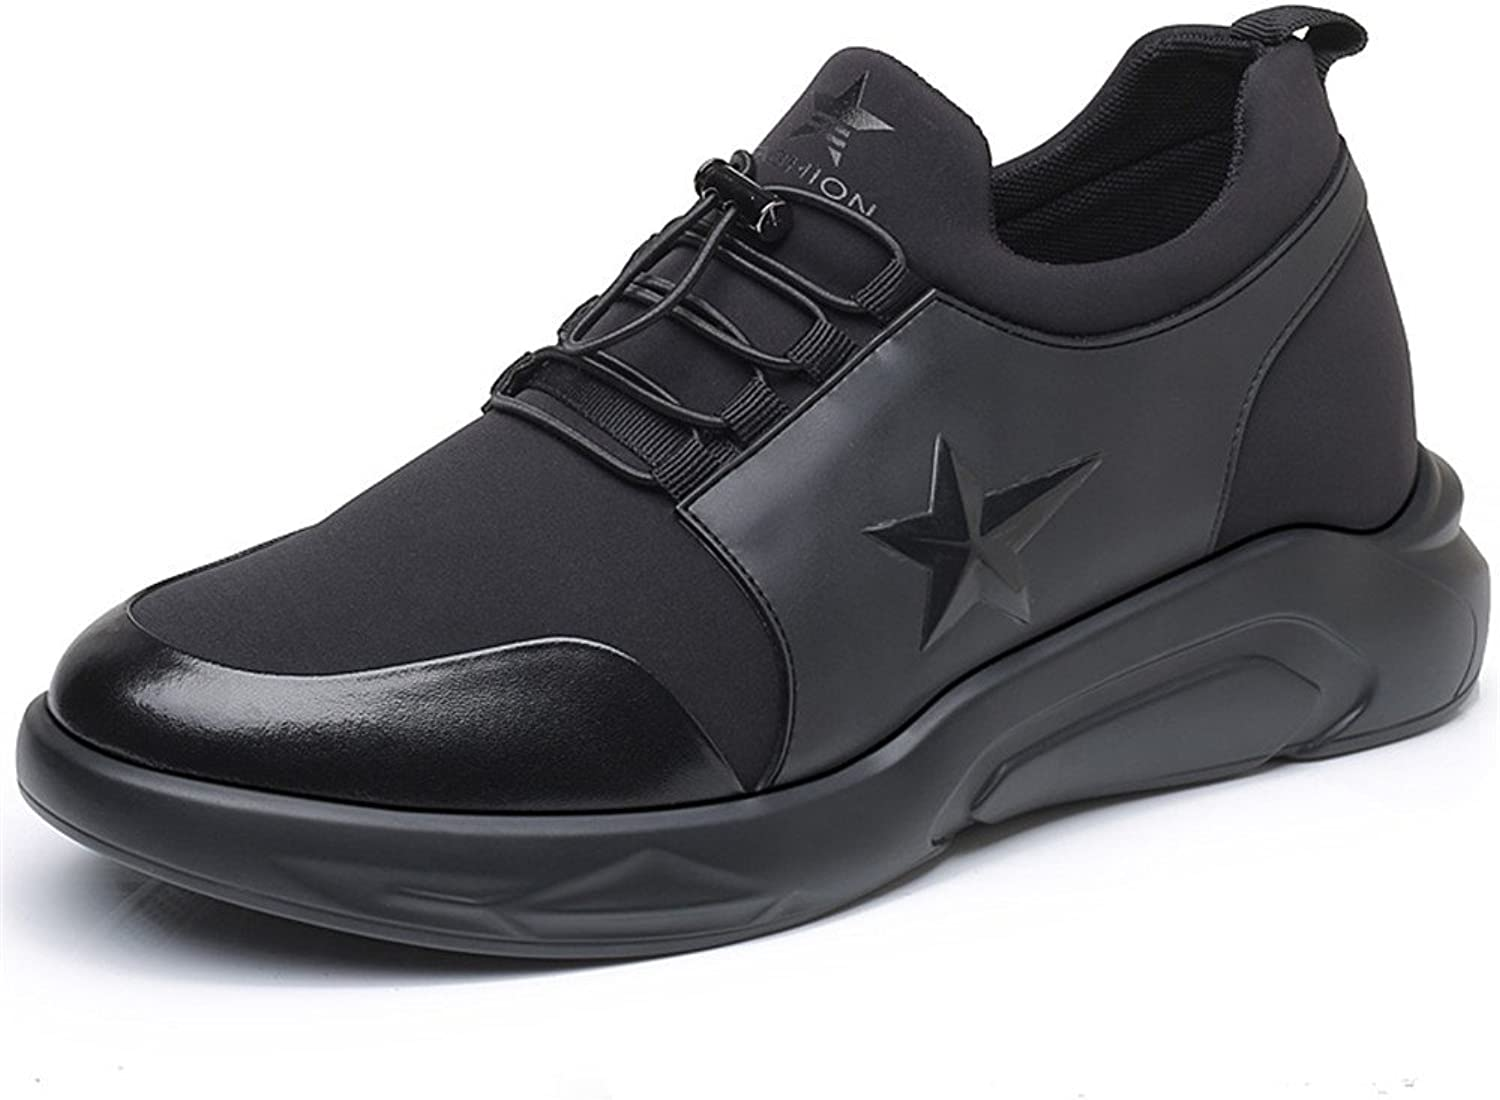 Men's Height Increasing Light Weight Casual Sport shoes 3.14 inches Elevator shoes Black